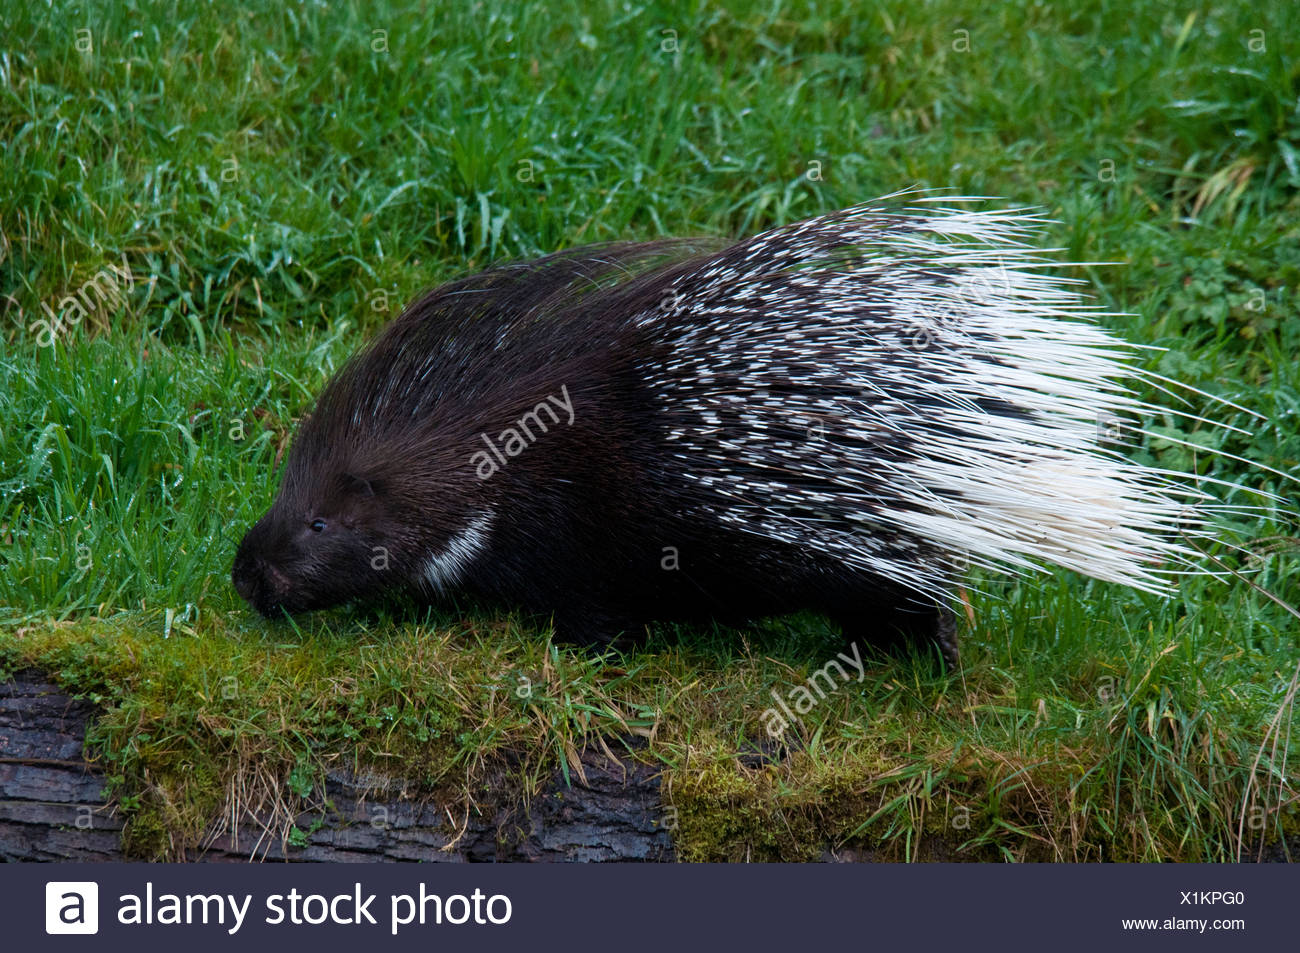 African crested porcupine, hystrix cristata, porcupine, animal, grass, USA, United States, America, - Stock Image